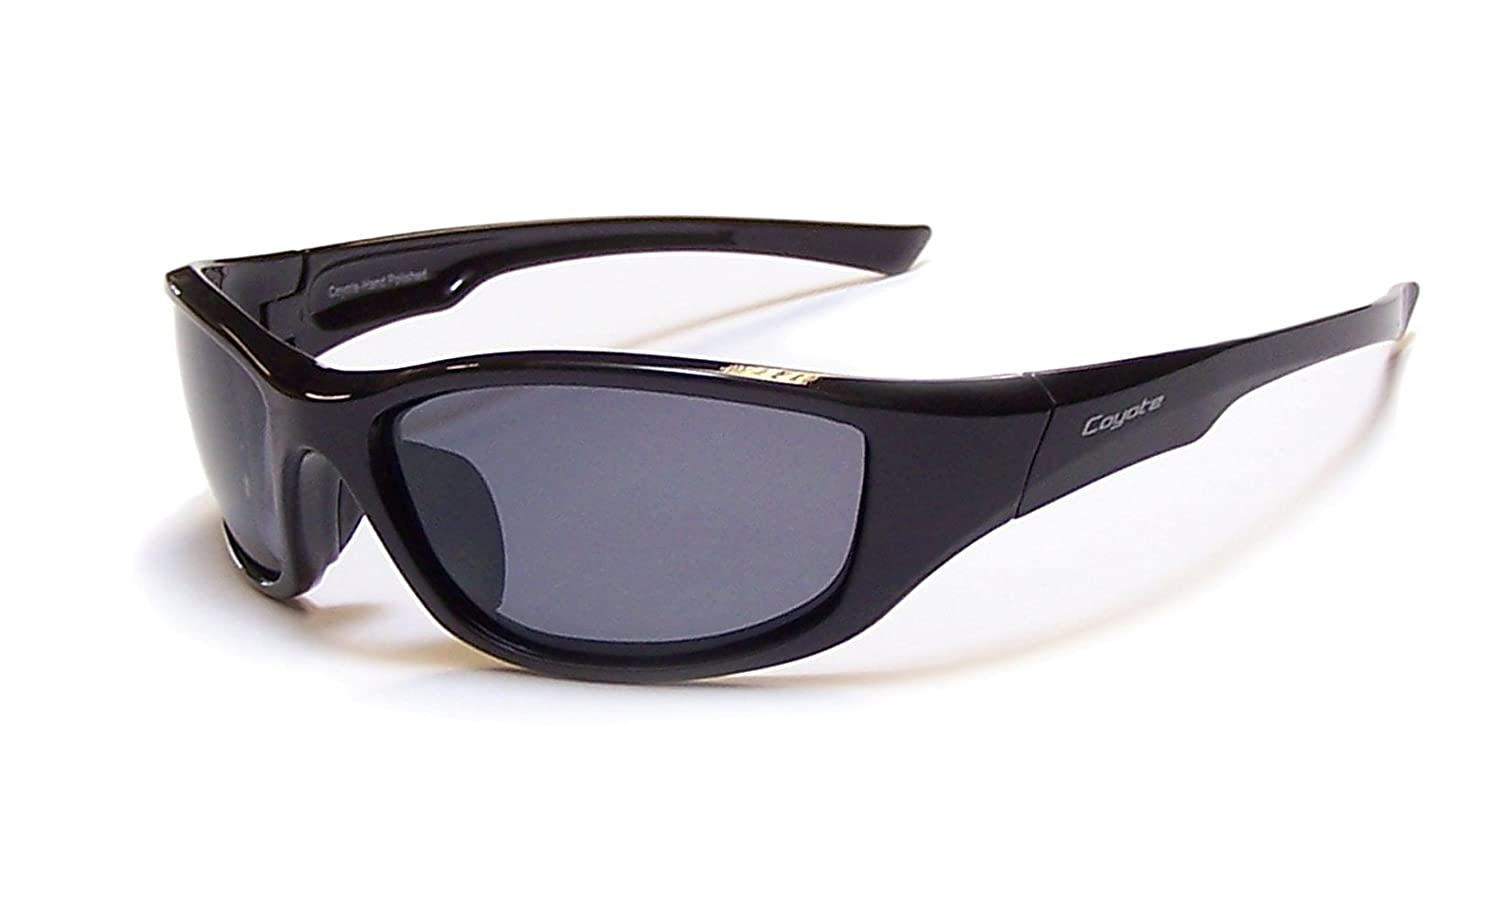 5d532a7aa6 Amazon.com  Coyote Eyewear P-19 Sportsman s P-Series Polarized Sport  Sunglasses